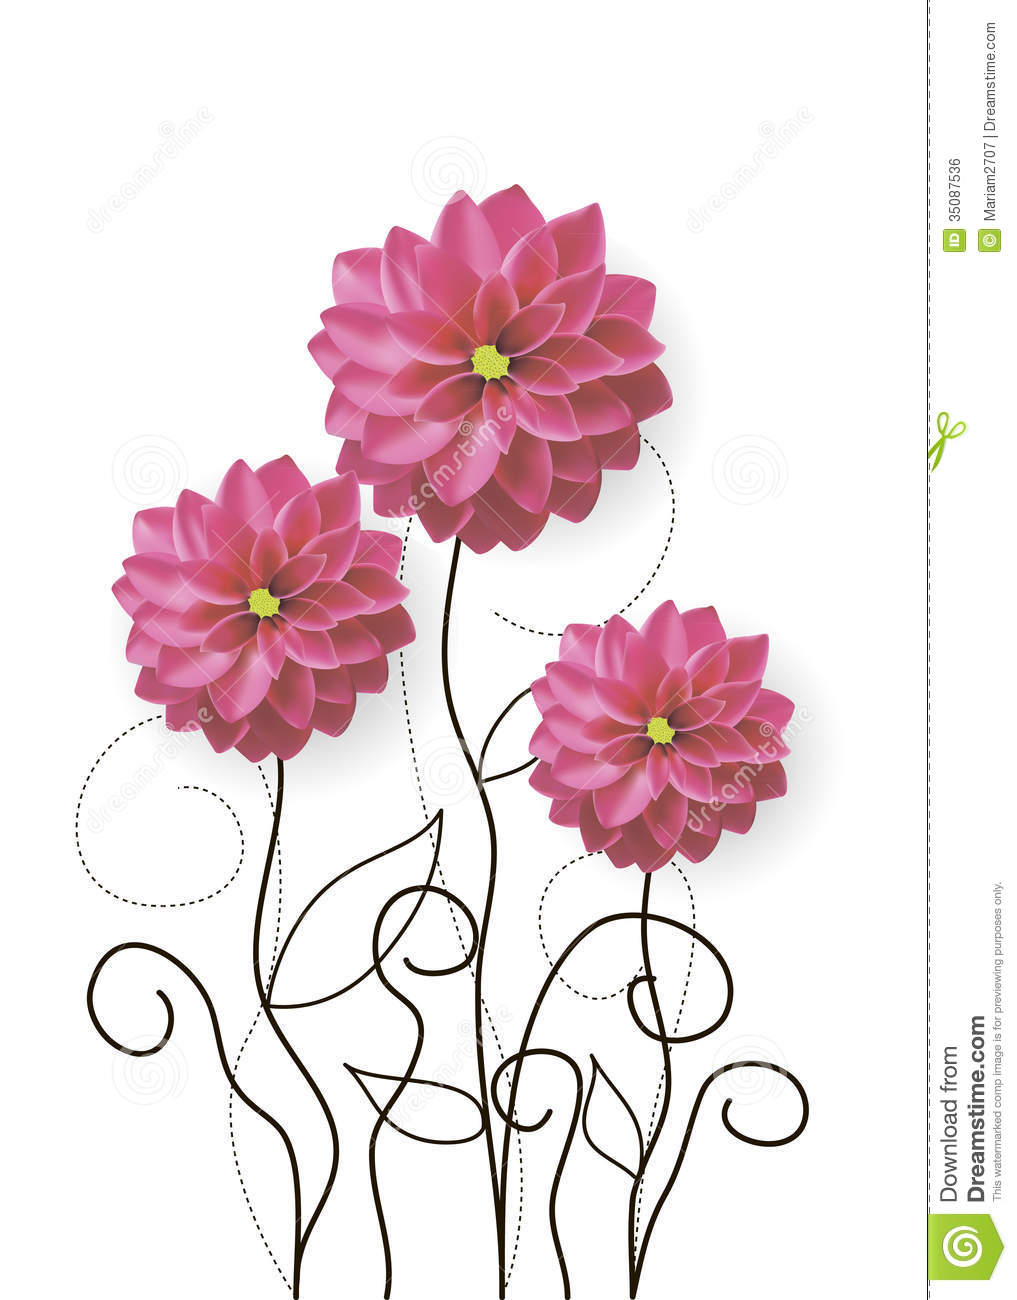 Dahlia Flowers Drawing Royalty Free Stock Image